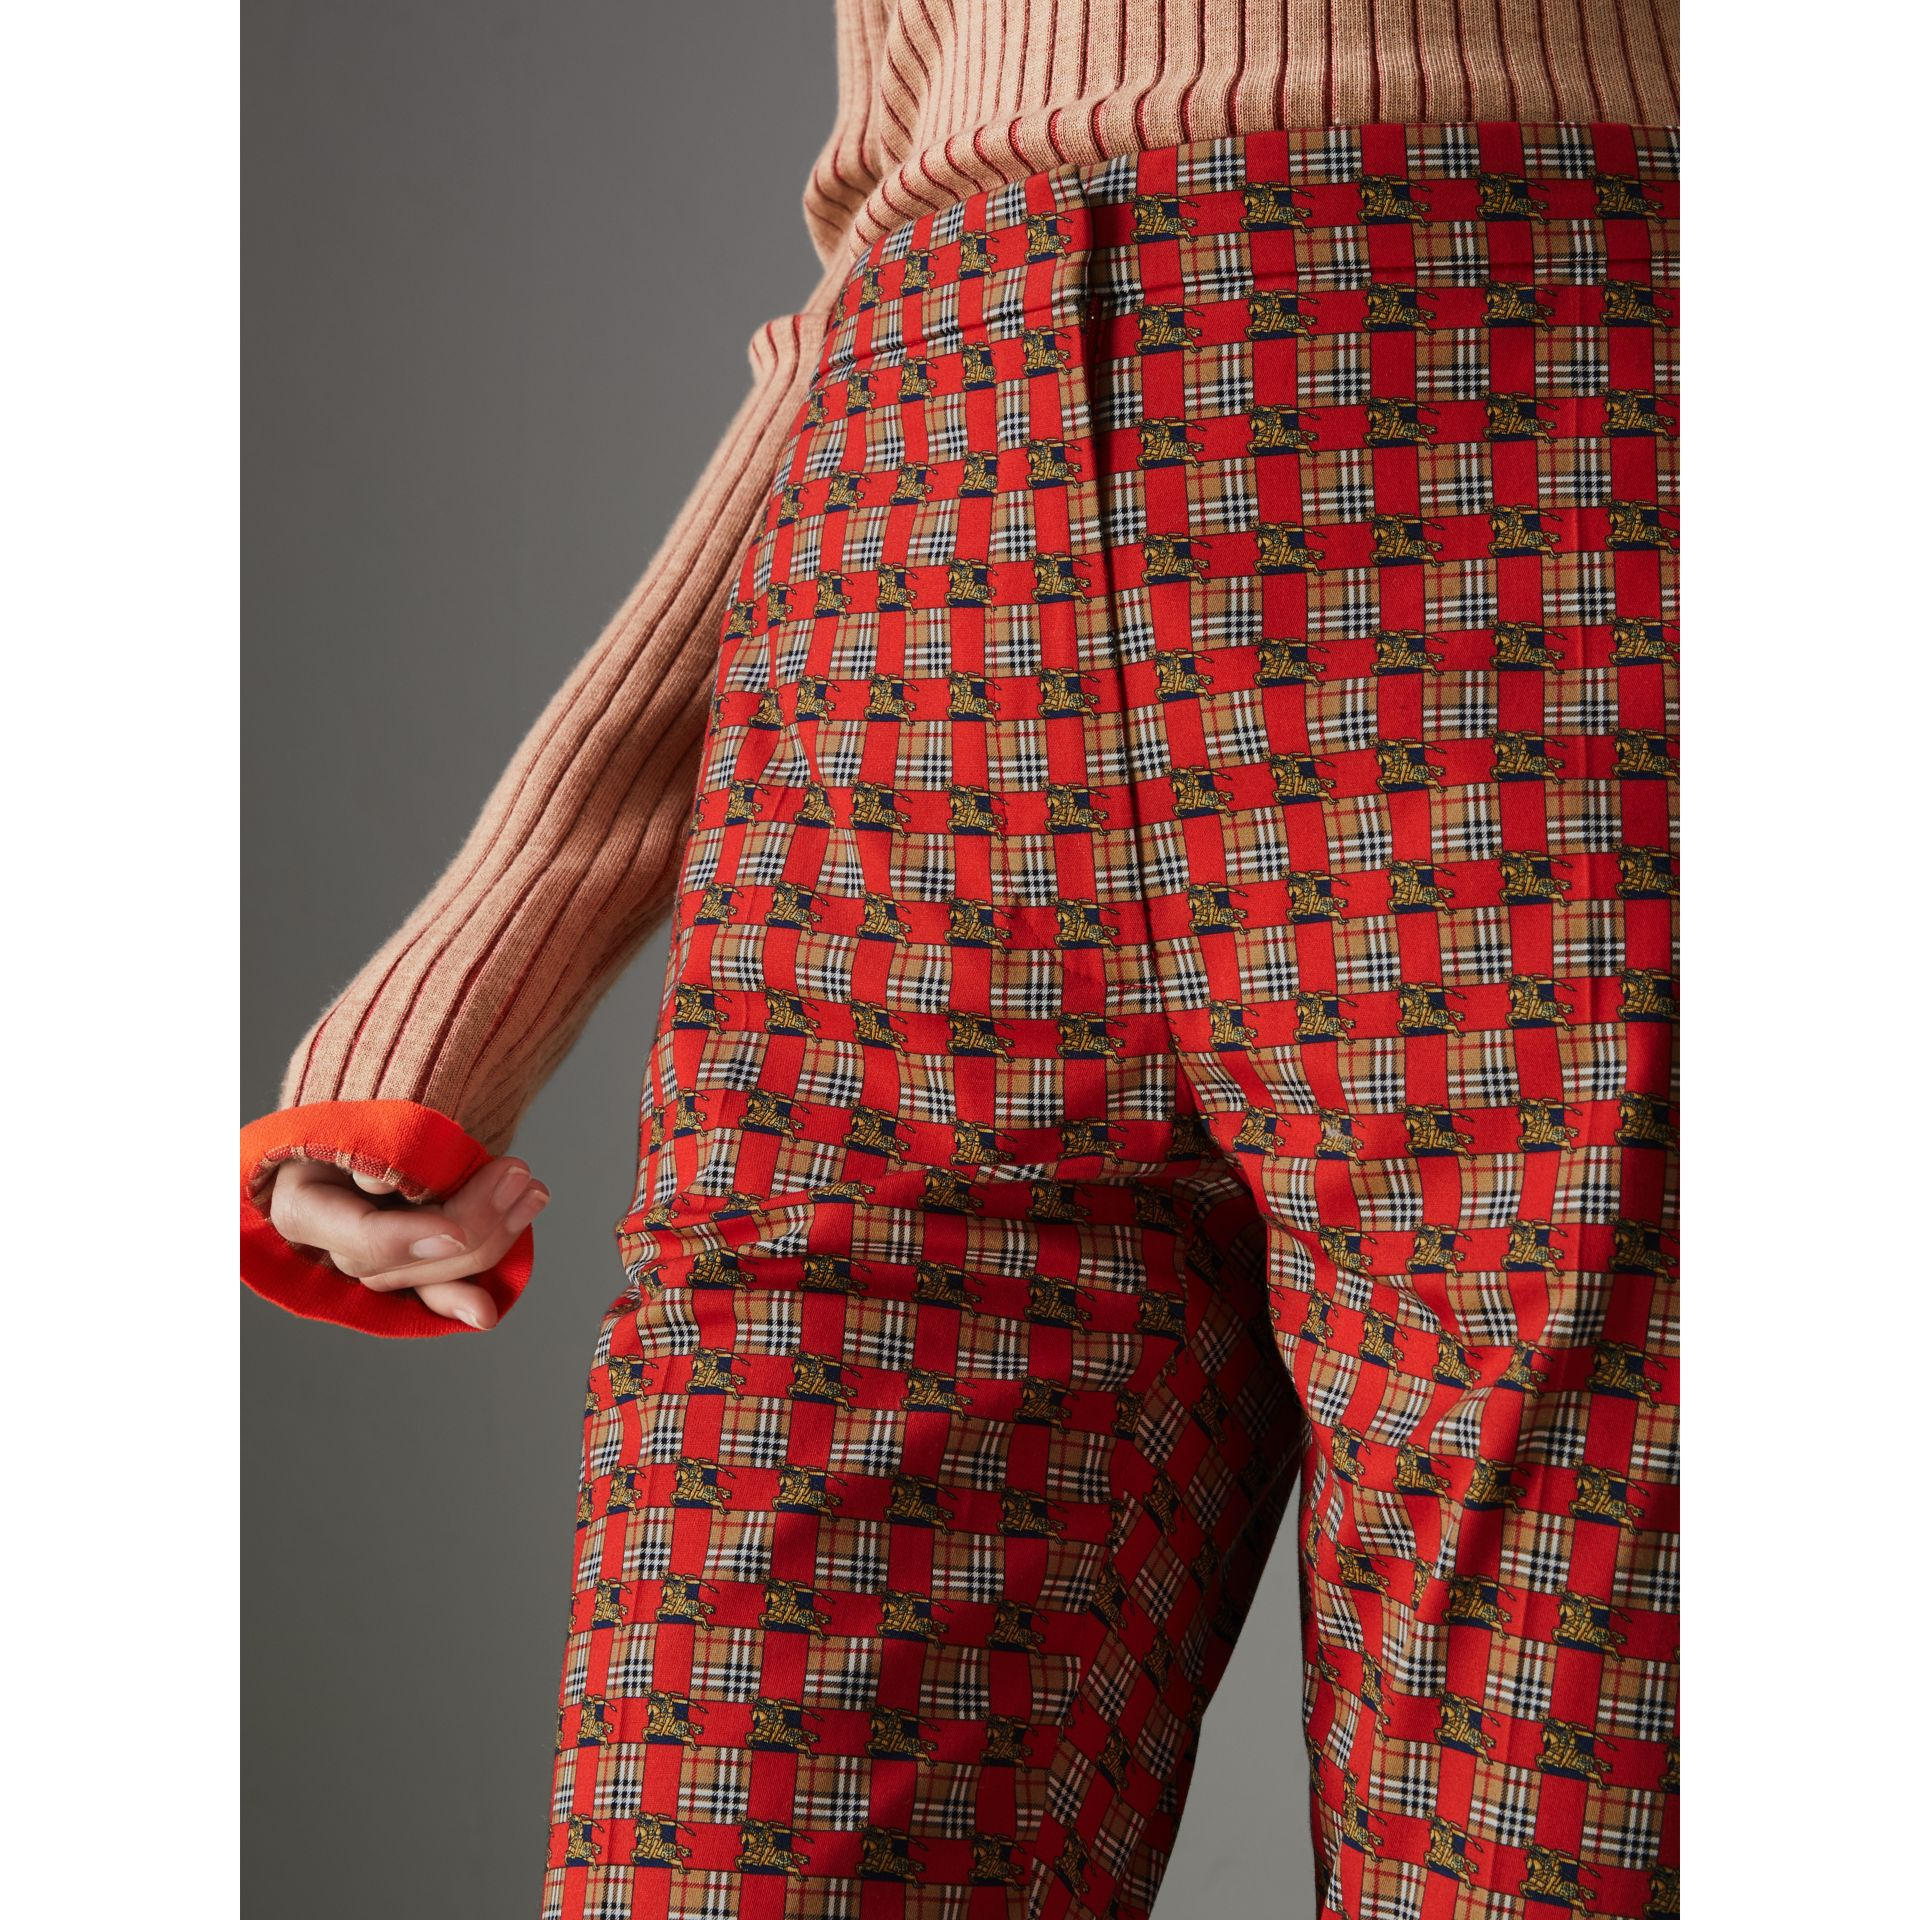 Tiled Archive Print Stretch Cotton Cigarette Trousers in Orange Red - Women | Burberry United States - gallery image 1